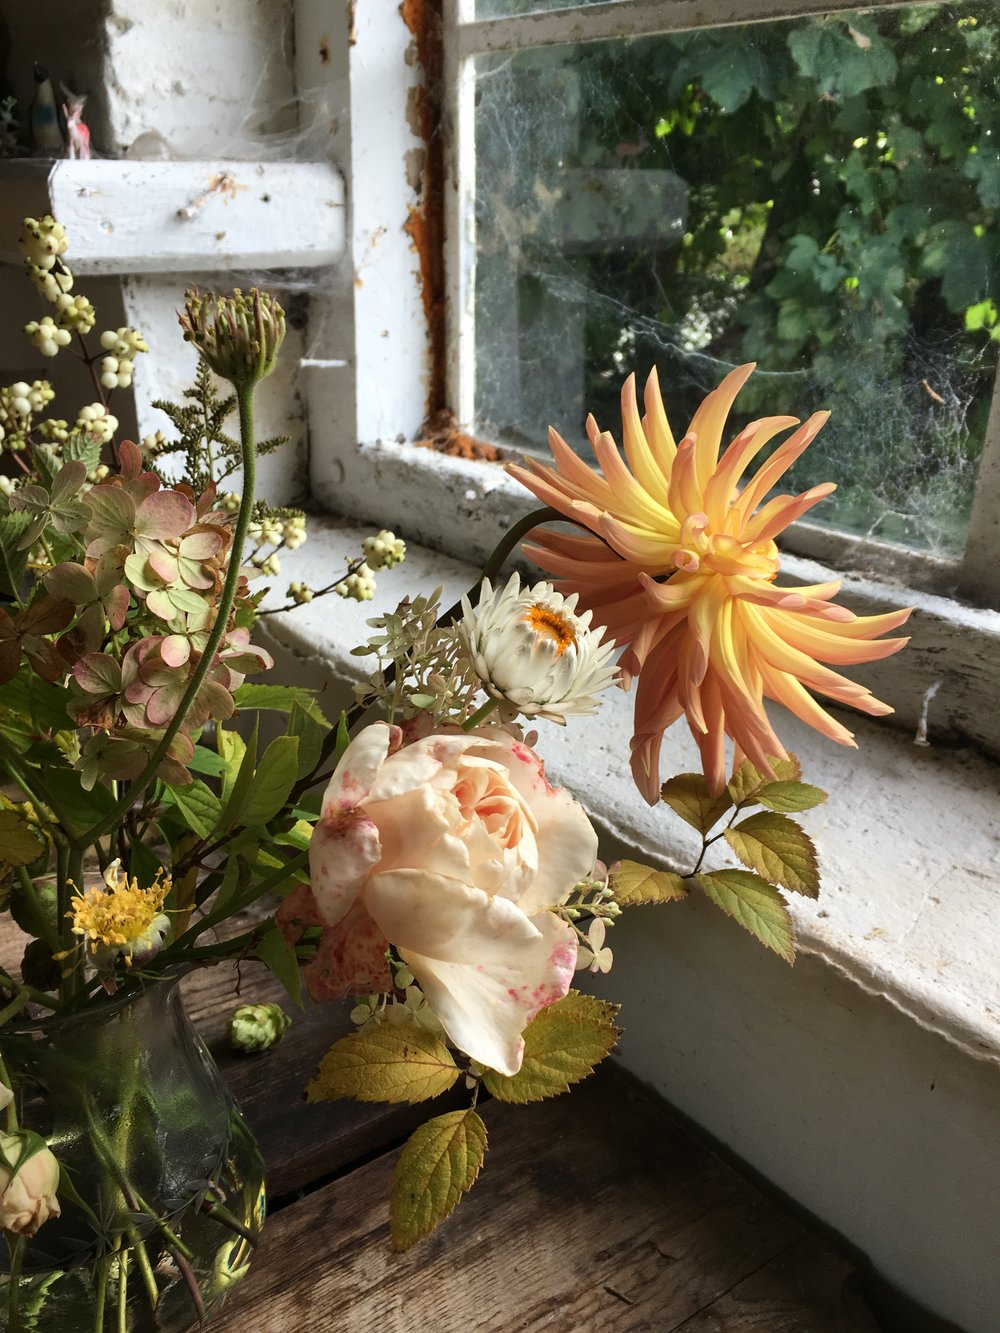 Flowers waiting in The Blue Carrot's studio.   Photo by Claire Bowen